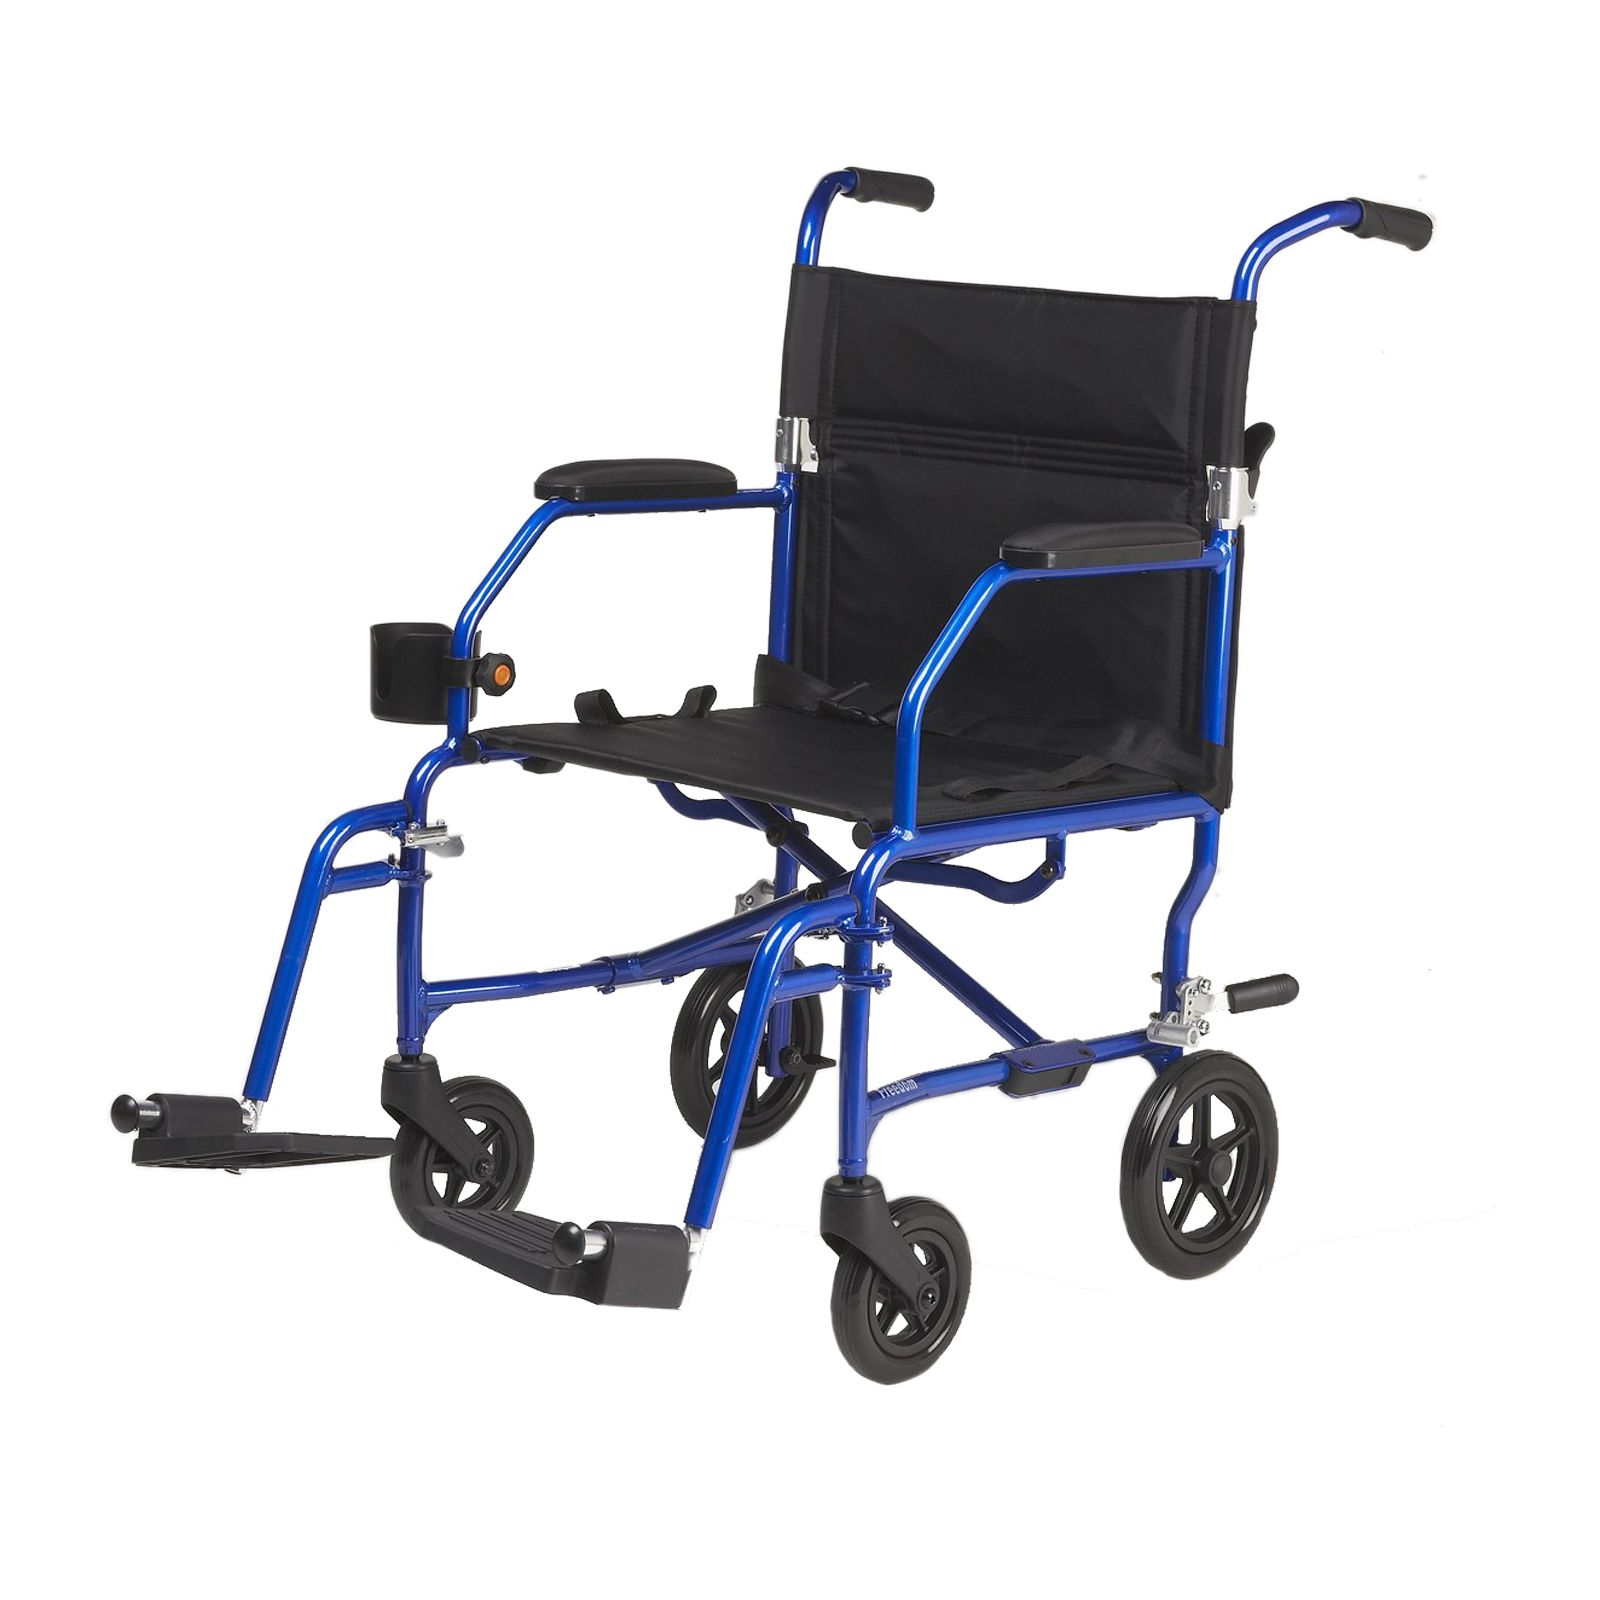 Superlight Freedom Transport Chair-Blue                                                                                          at mygofer.com